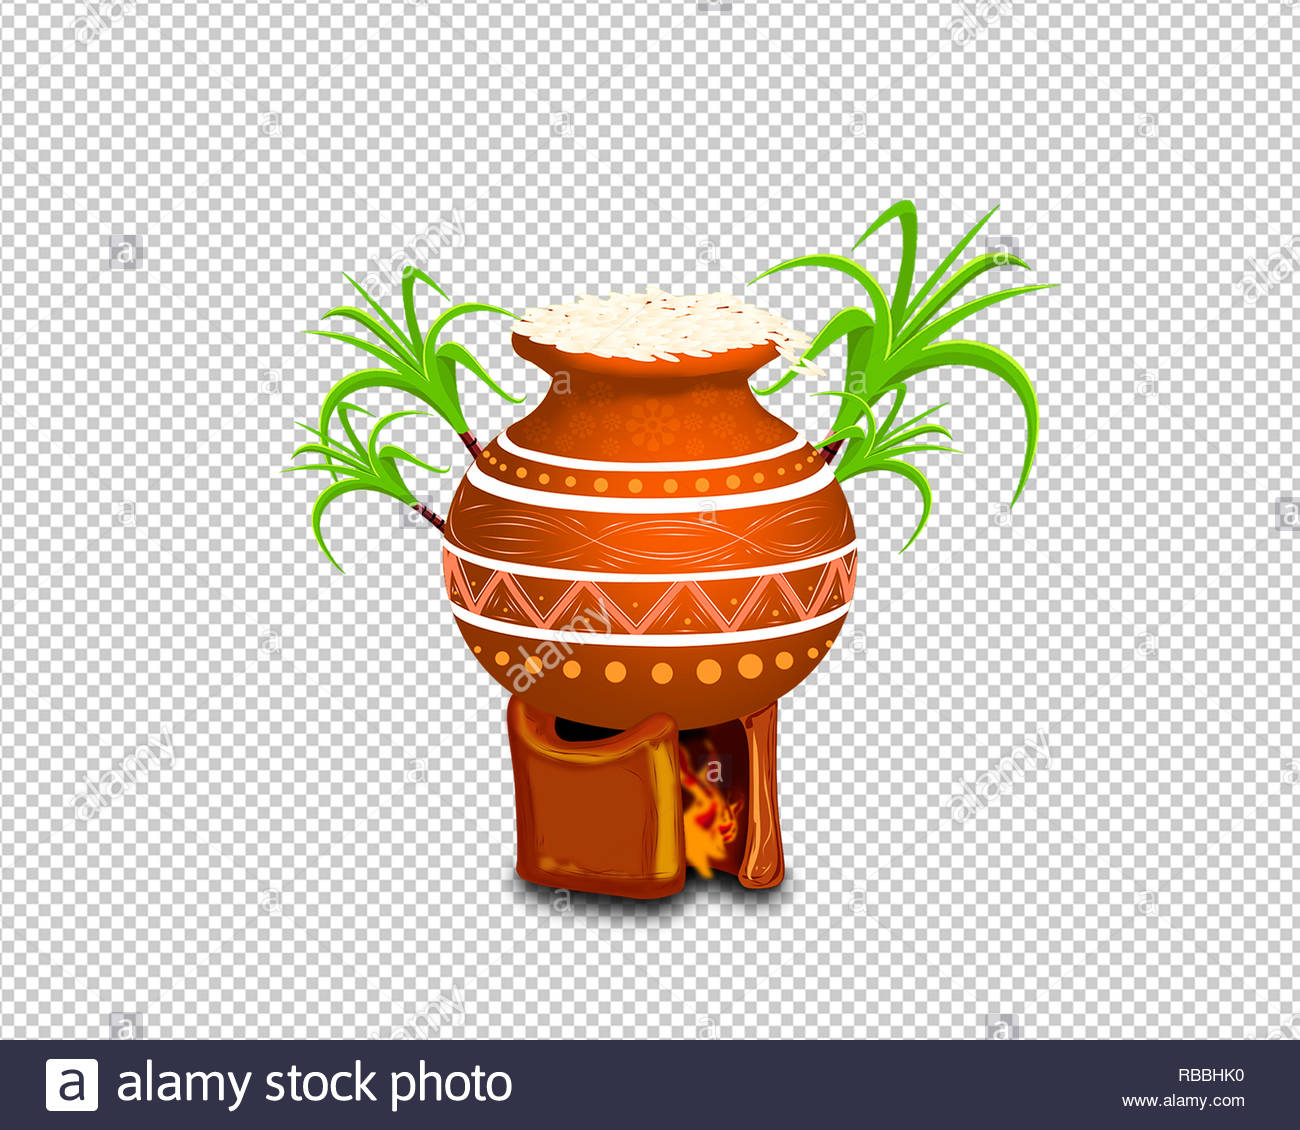 Happy Pongal Festival offer banners 2019, png designs Stock Photo.